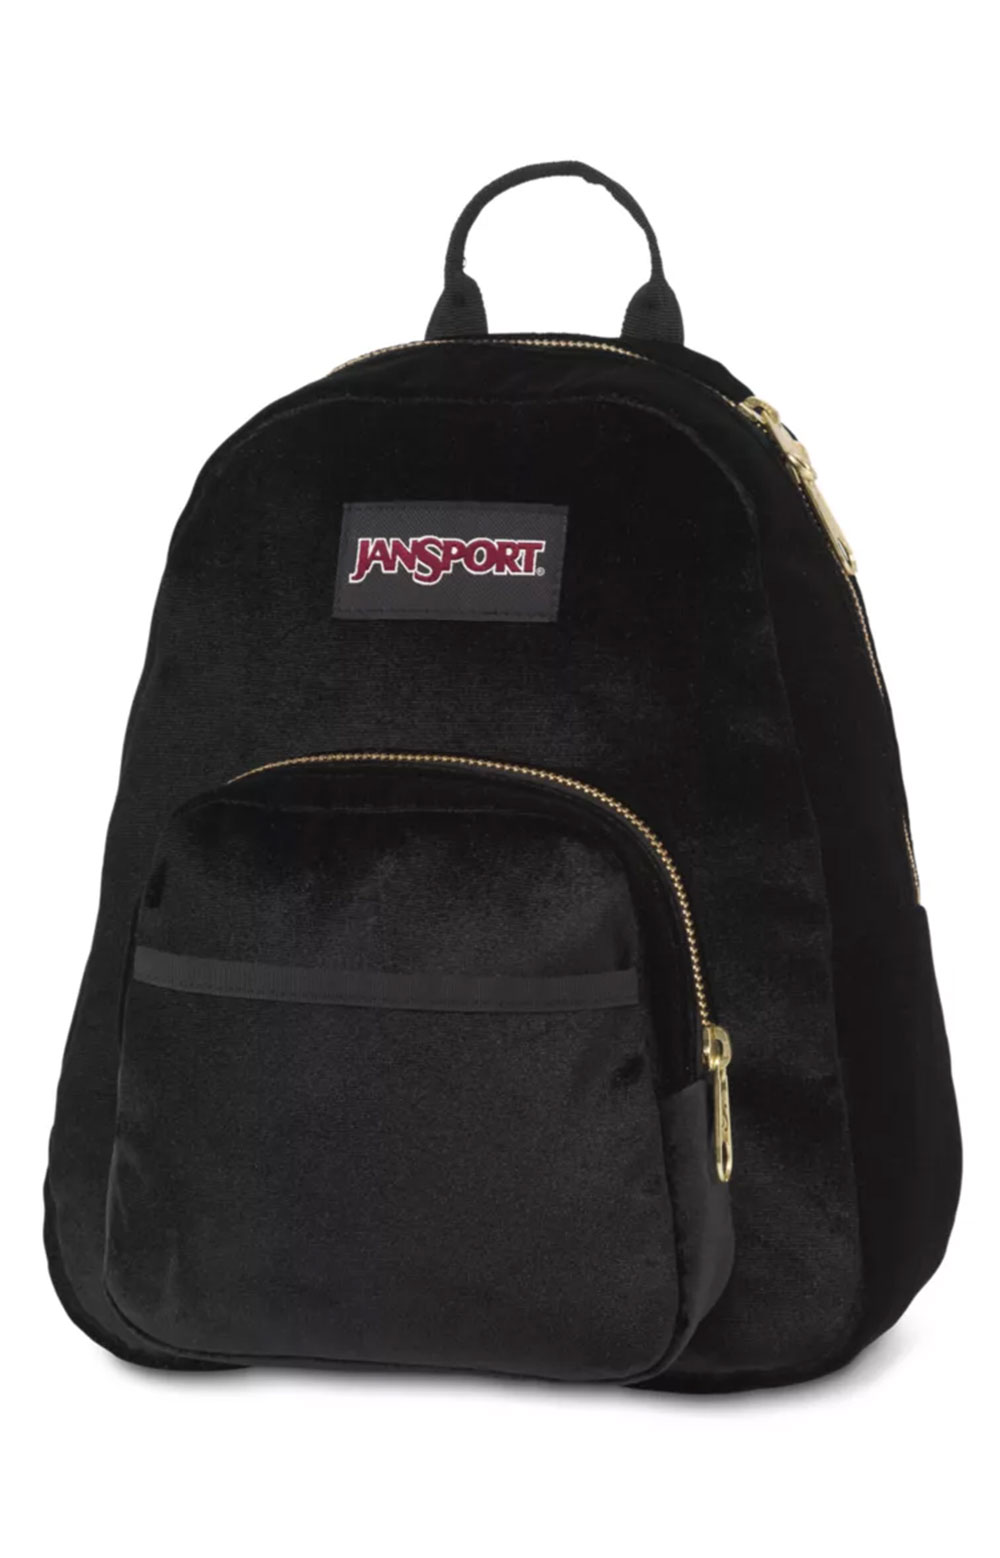 Half Pint FX Mini Backpack - Black Velvet 2